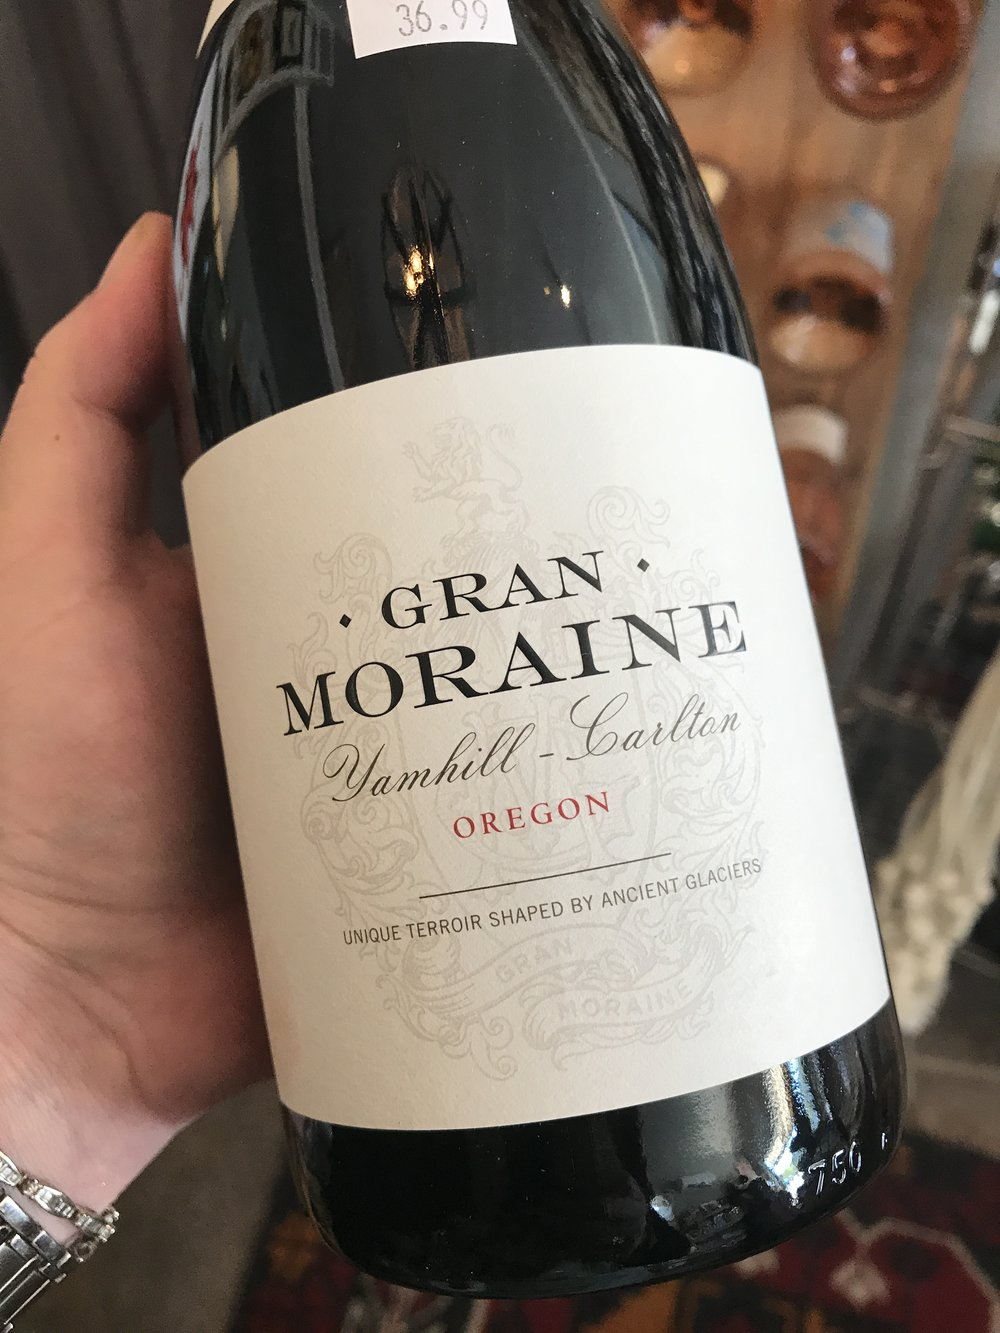 2013 Gran Moraine, Yamhill-Carlton: A darkness of flavor and texture—a Willakenzie sedimentary soil spice—carries through this supple pinot, with its scents of plum and espresso, its flavors taking on a mild amaro bitterness. With air, the red spectrum of fruit emerges, piercing the darkness, while supple tannins lead to the close. This is still evolving; for the cellar. 92 W&S 36.99